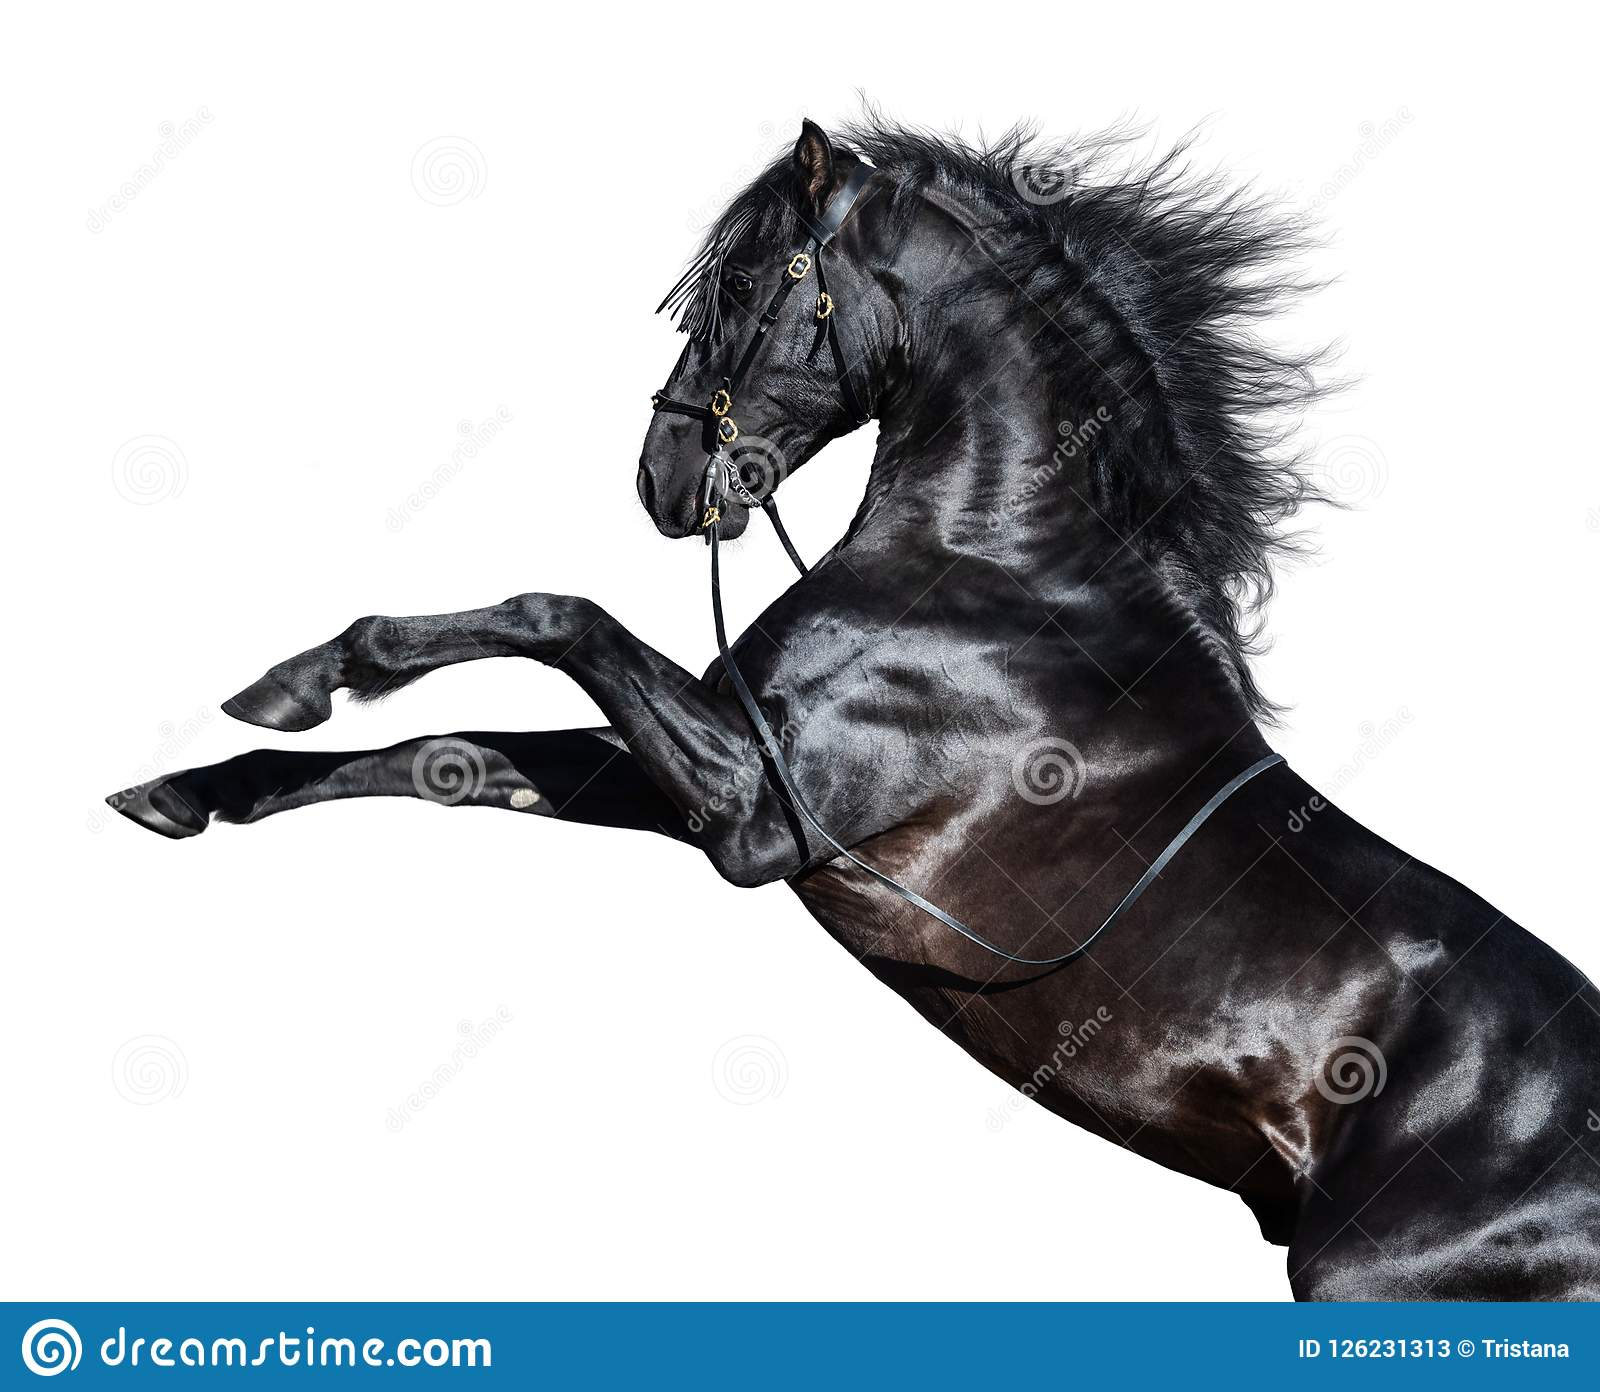 97 607 Black Horse Photos Free Royalty Free Stock Photos From Dreamstime